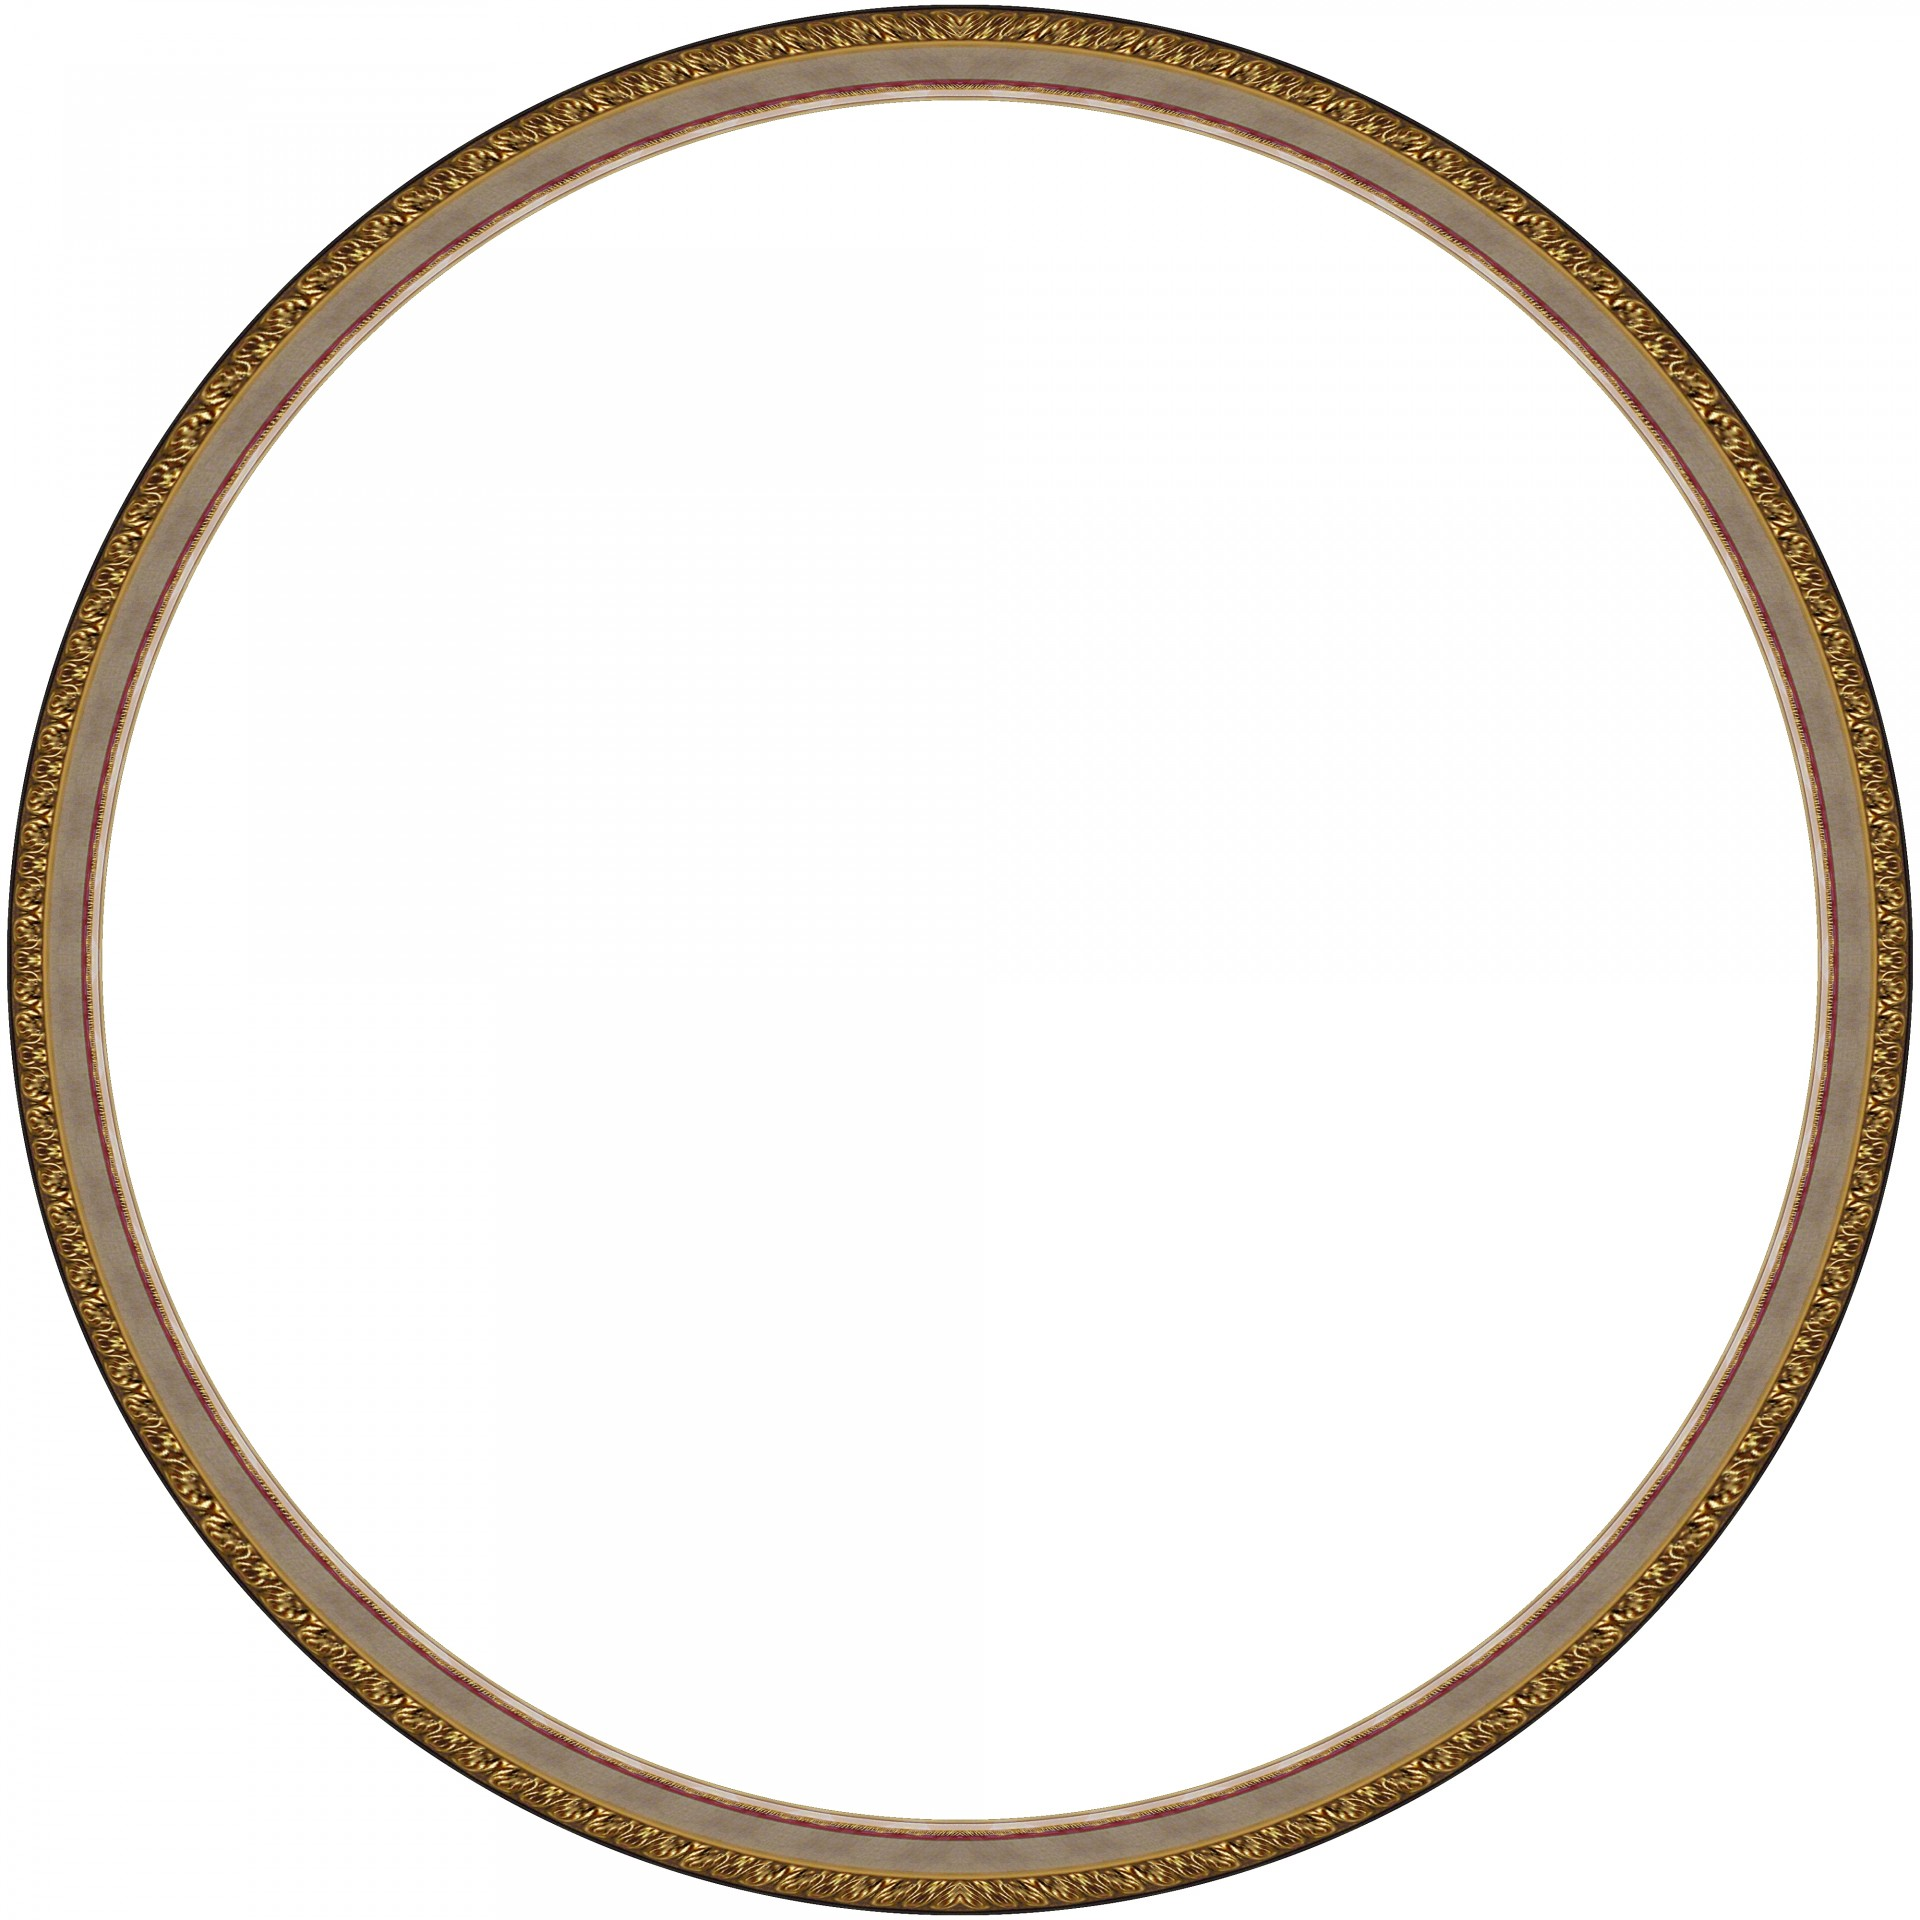 Round Frame 33 Free Stock Photo - Public Domain Pictures